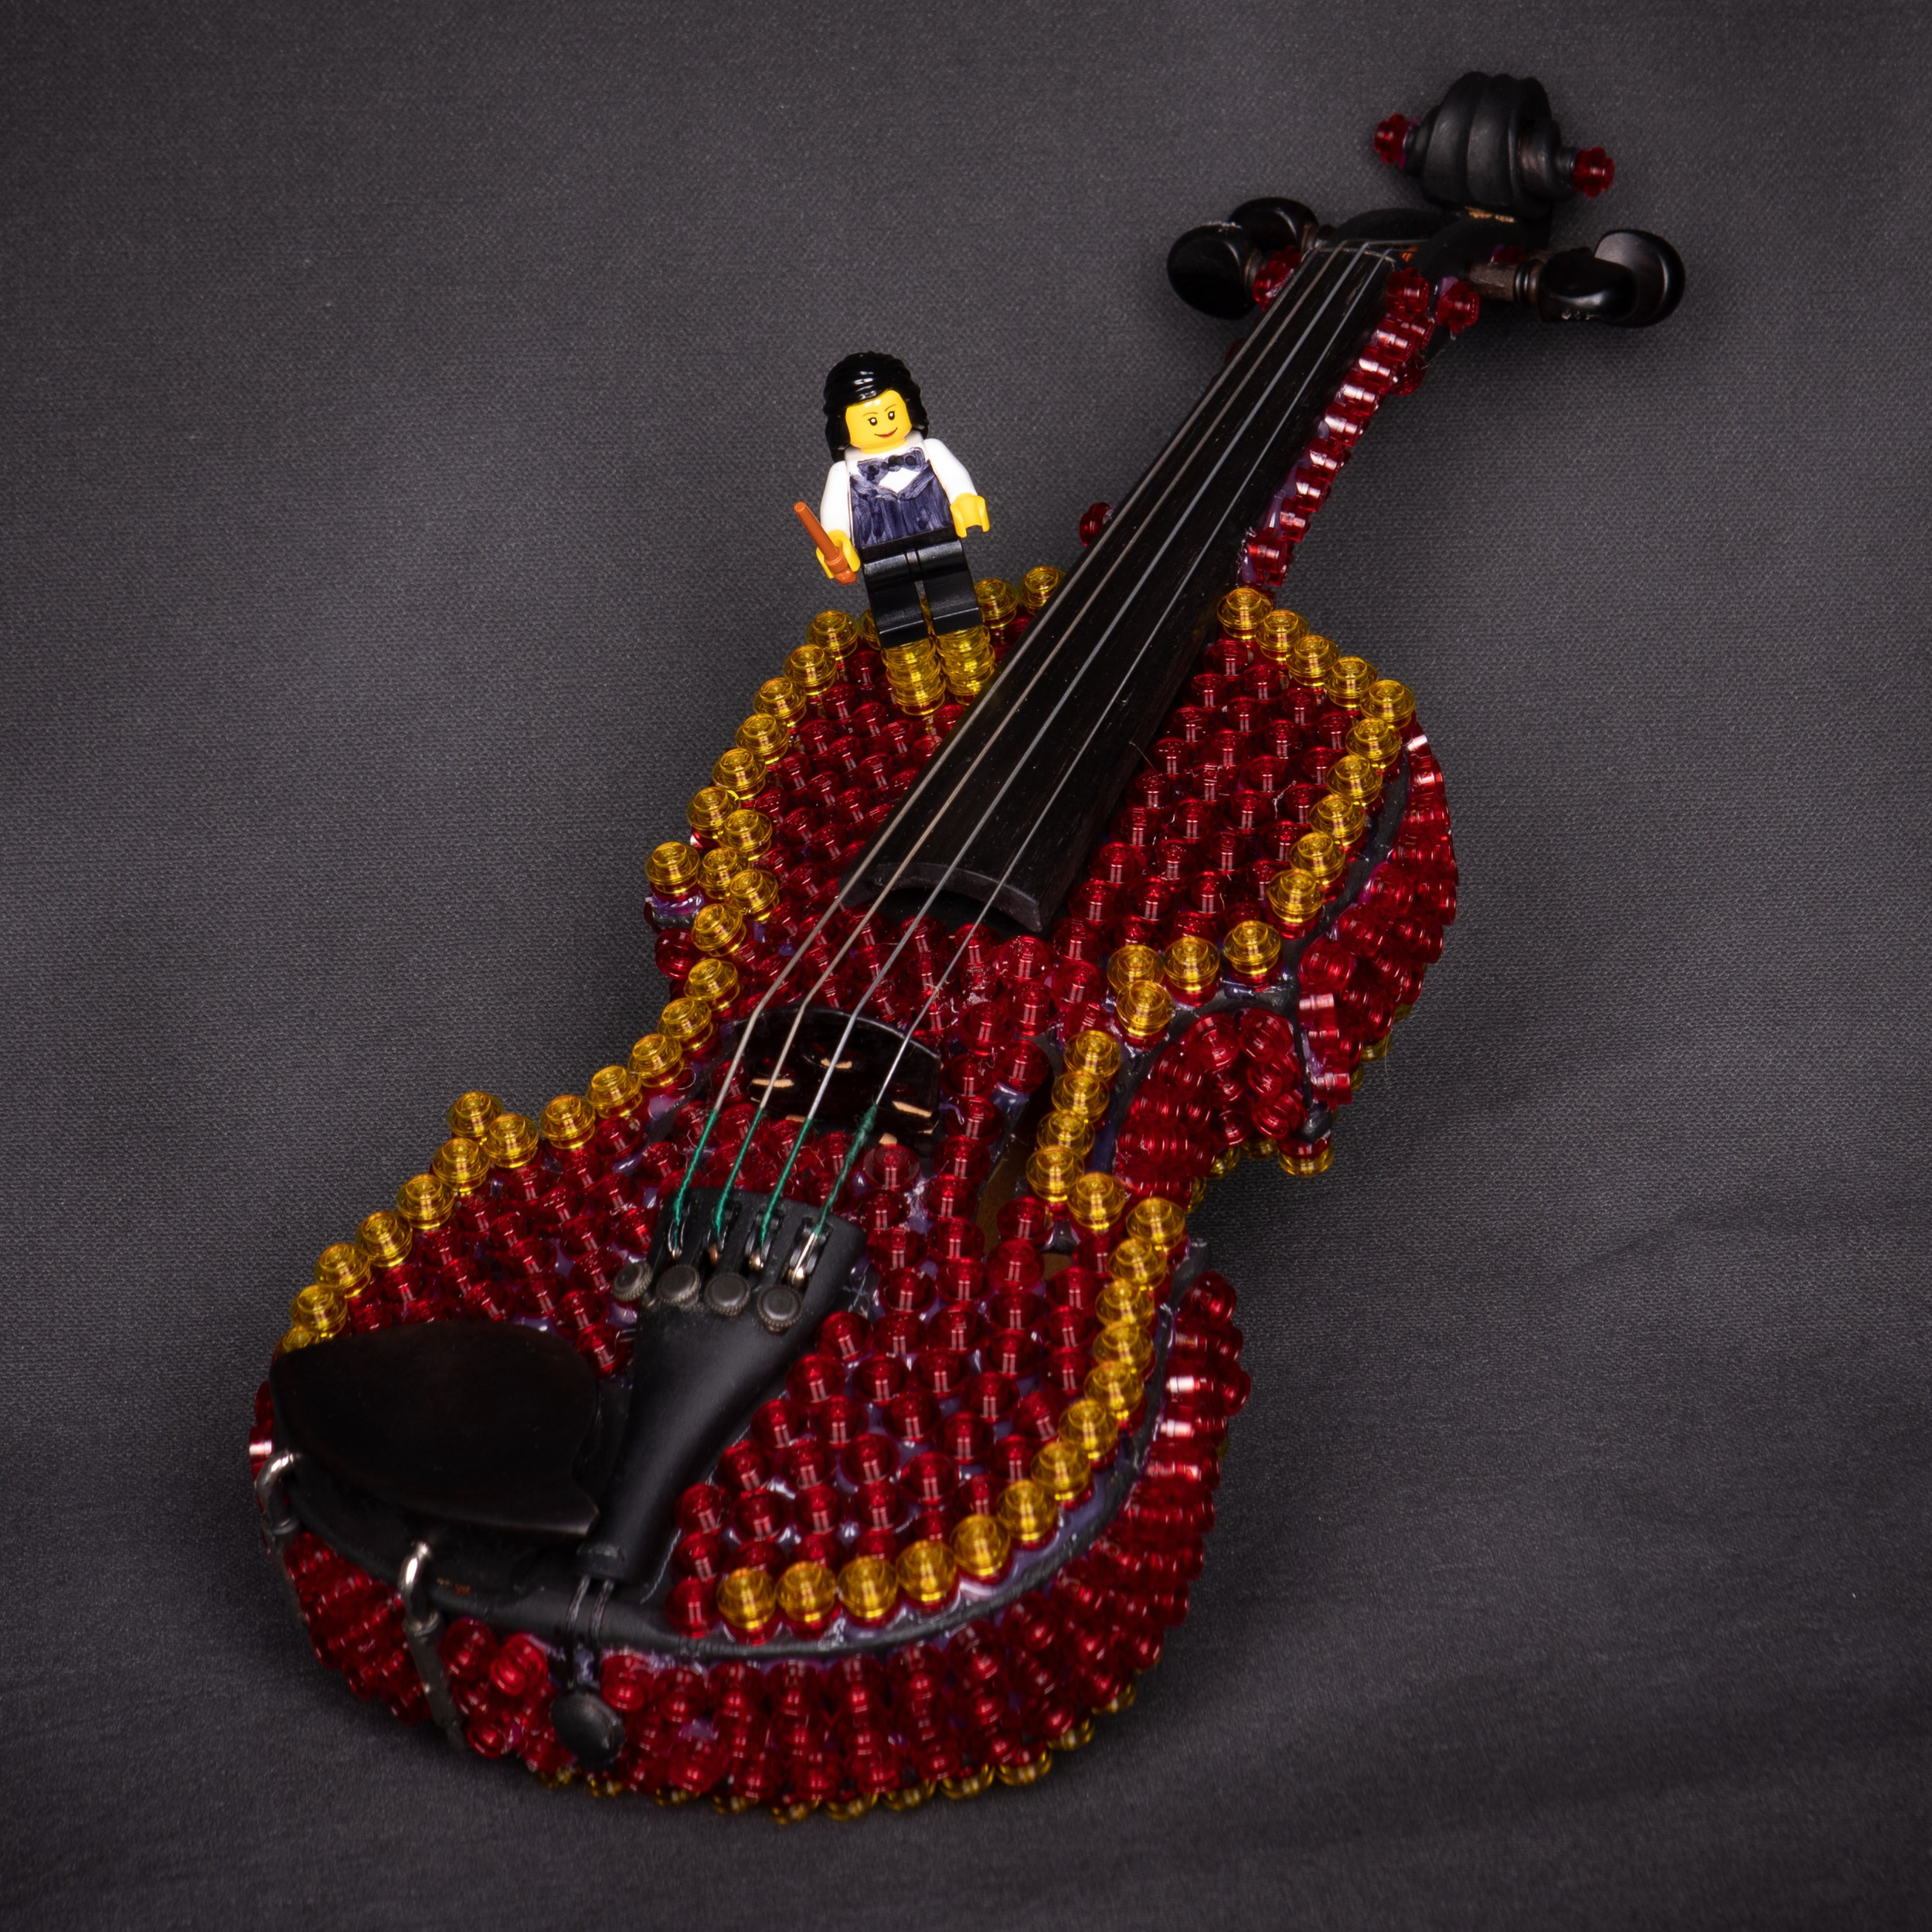 Fiddle Brick 1.jpg